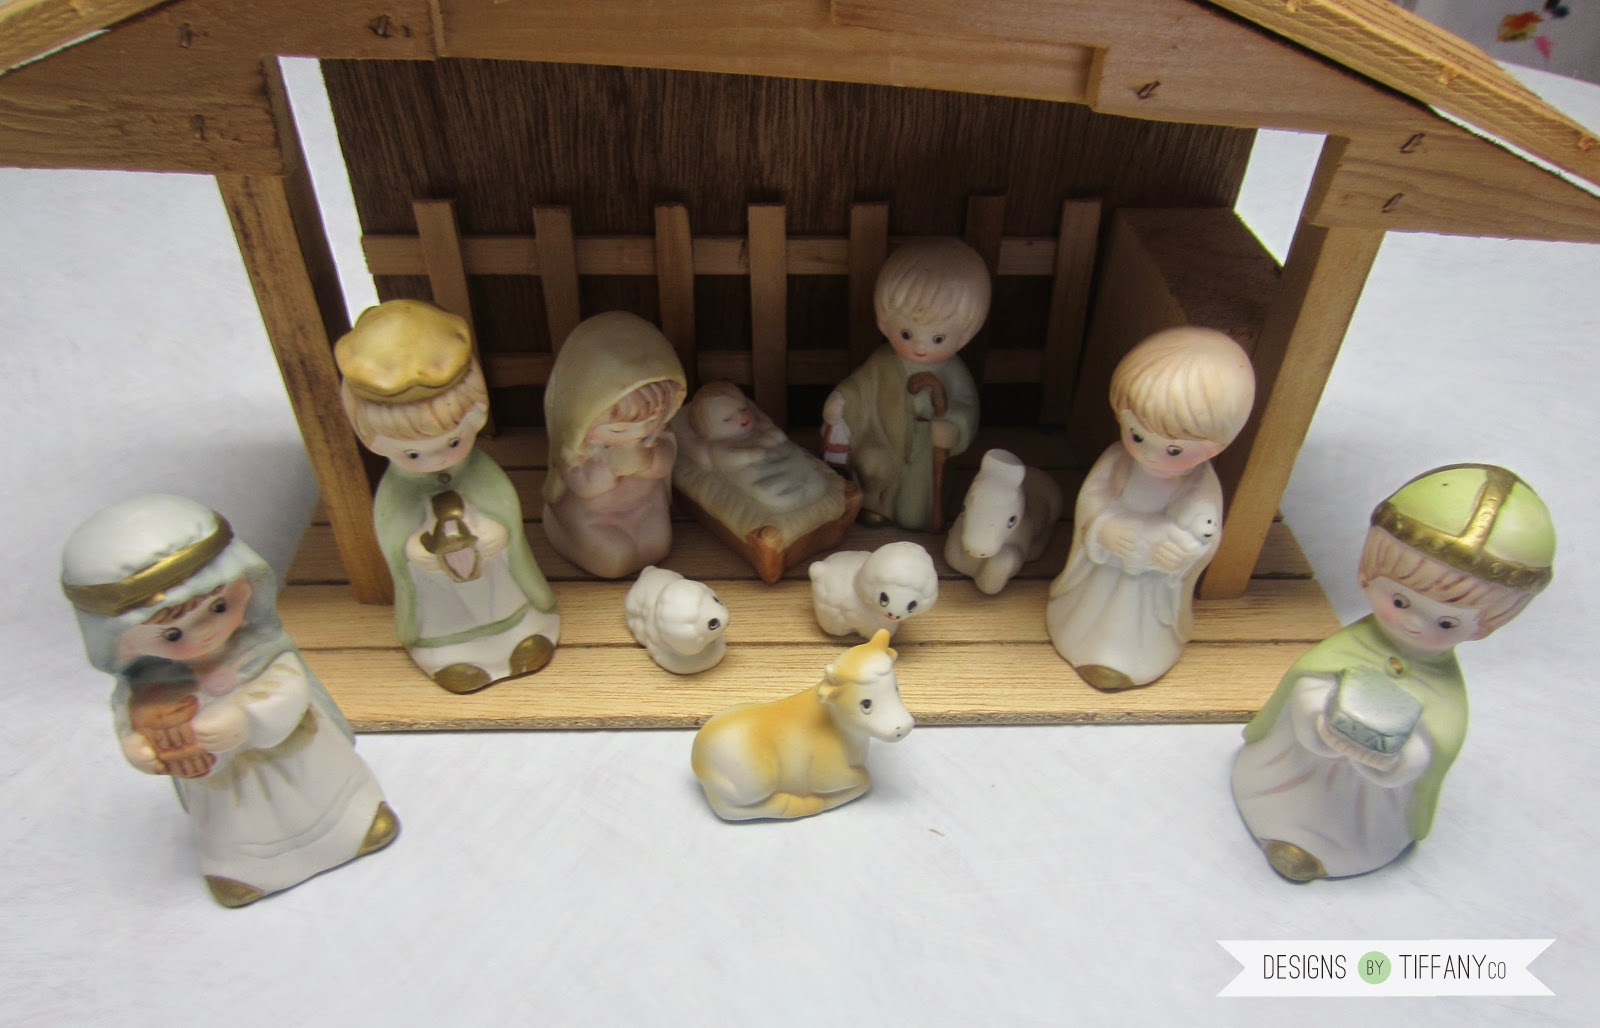 Classy Christmas Precious Moments Nativity MakeOver  Designs by